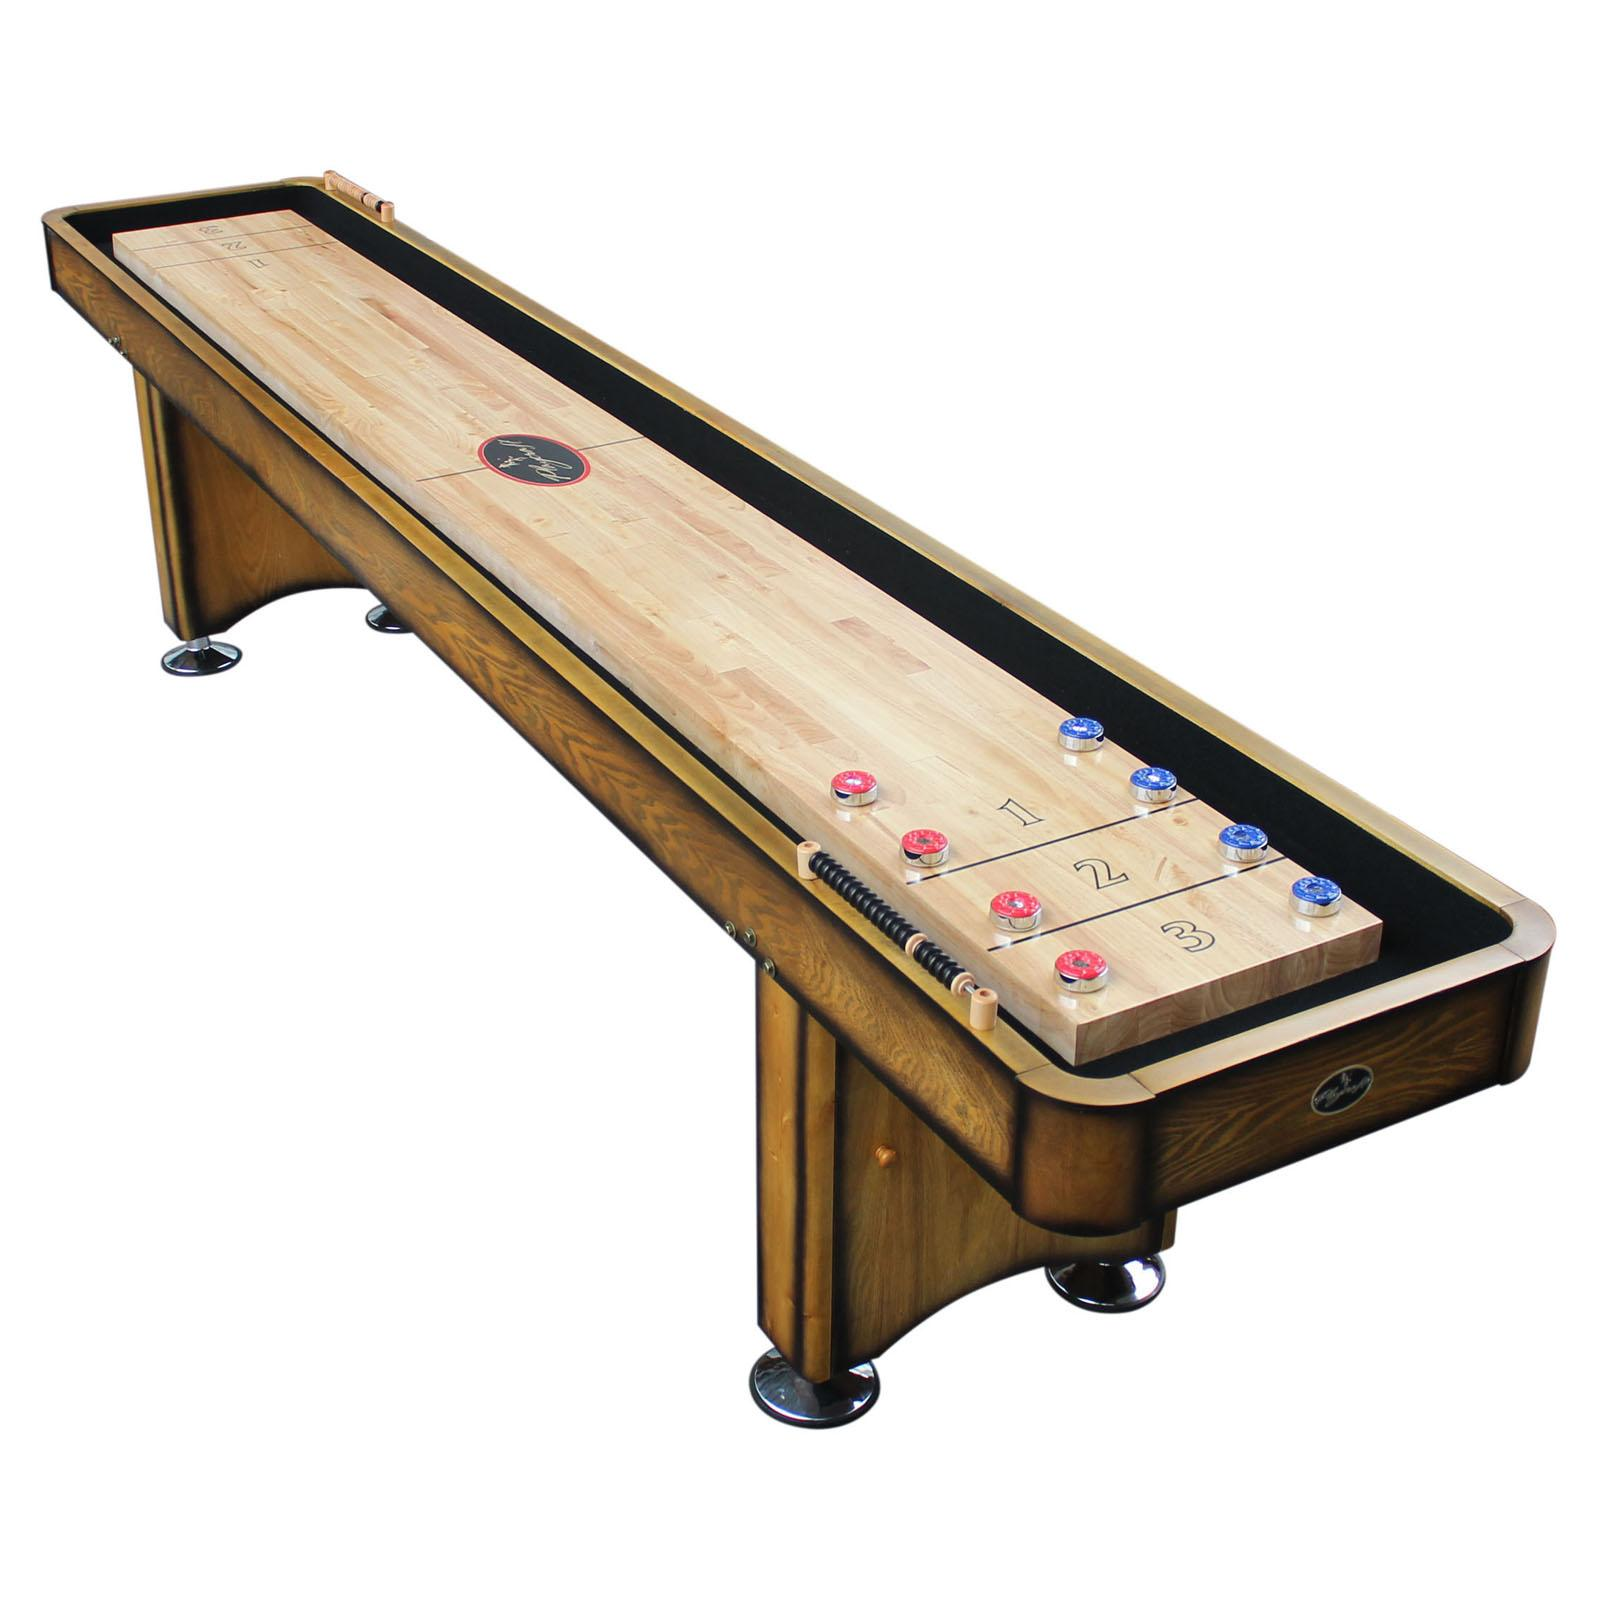 Playcraft Georgetown Shuffleboard Table with 1.75 in. Butcher Block and Climate Adjustment - SHGEHO16